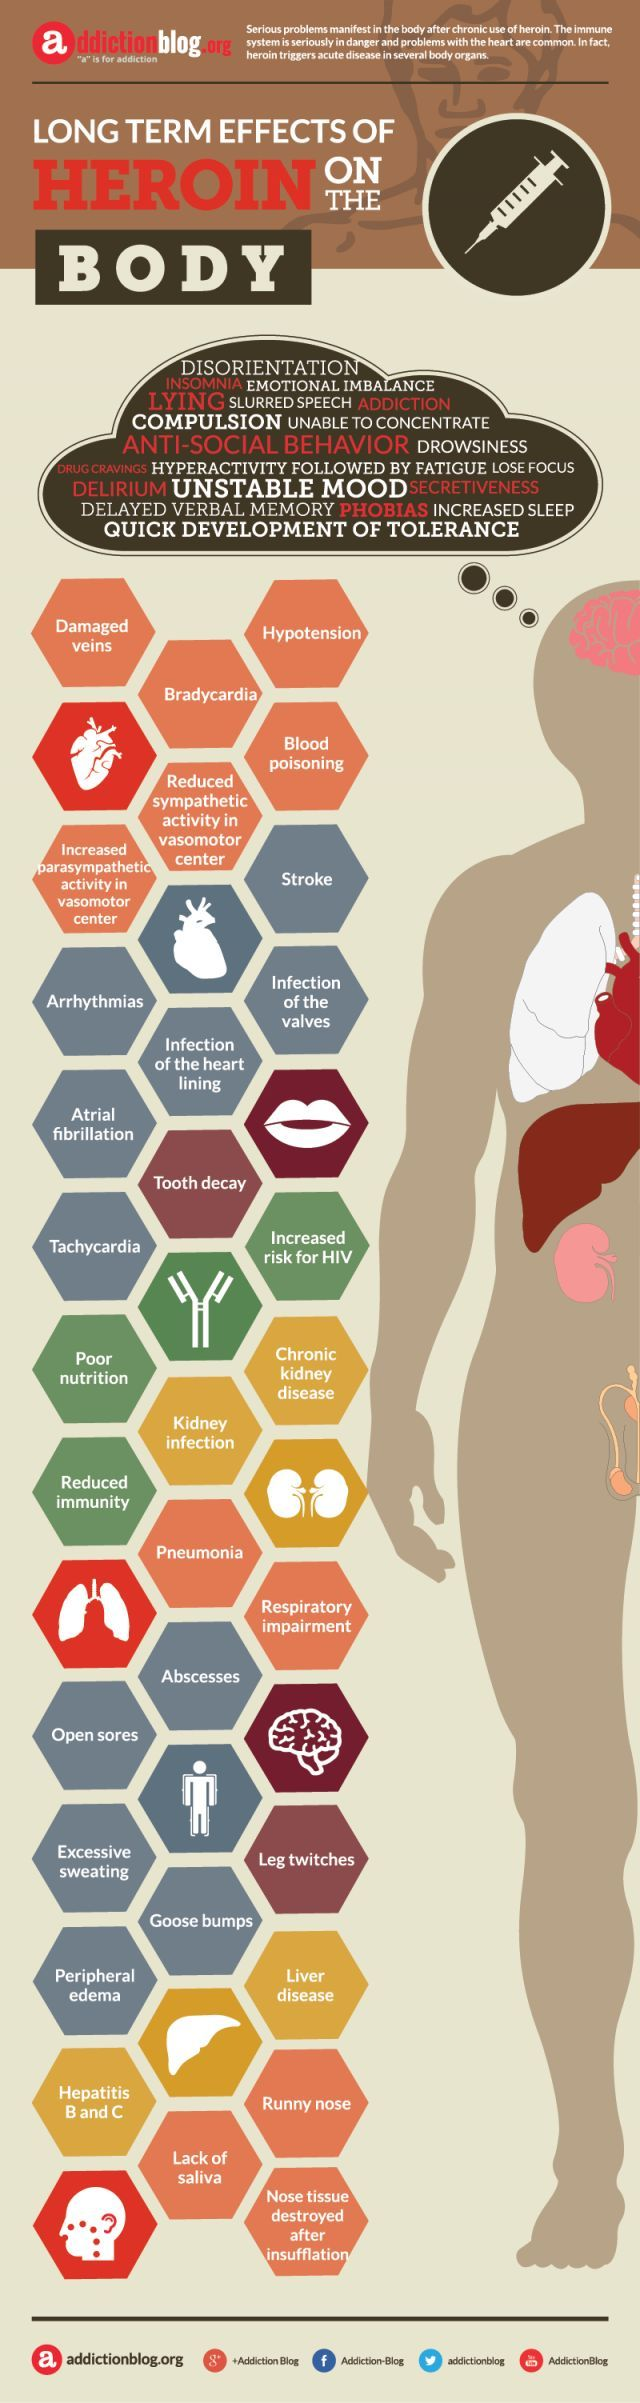 Long term effects of heroin on the body (INFOGRAPHIC) | Addiction Blog